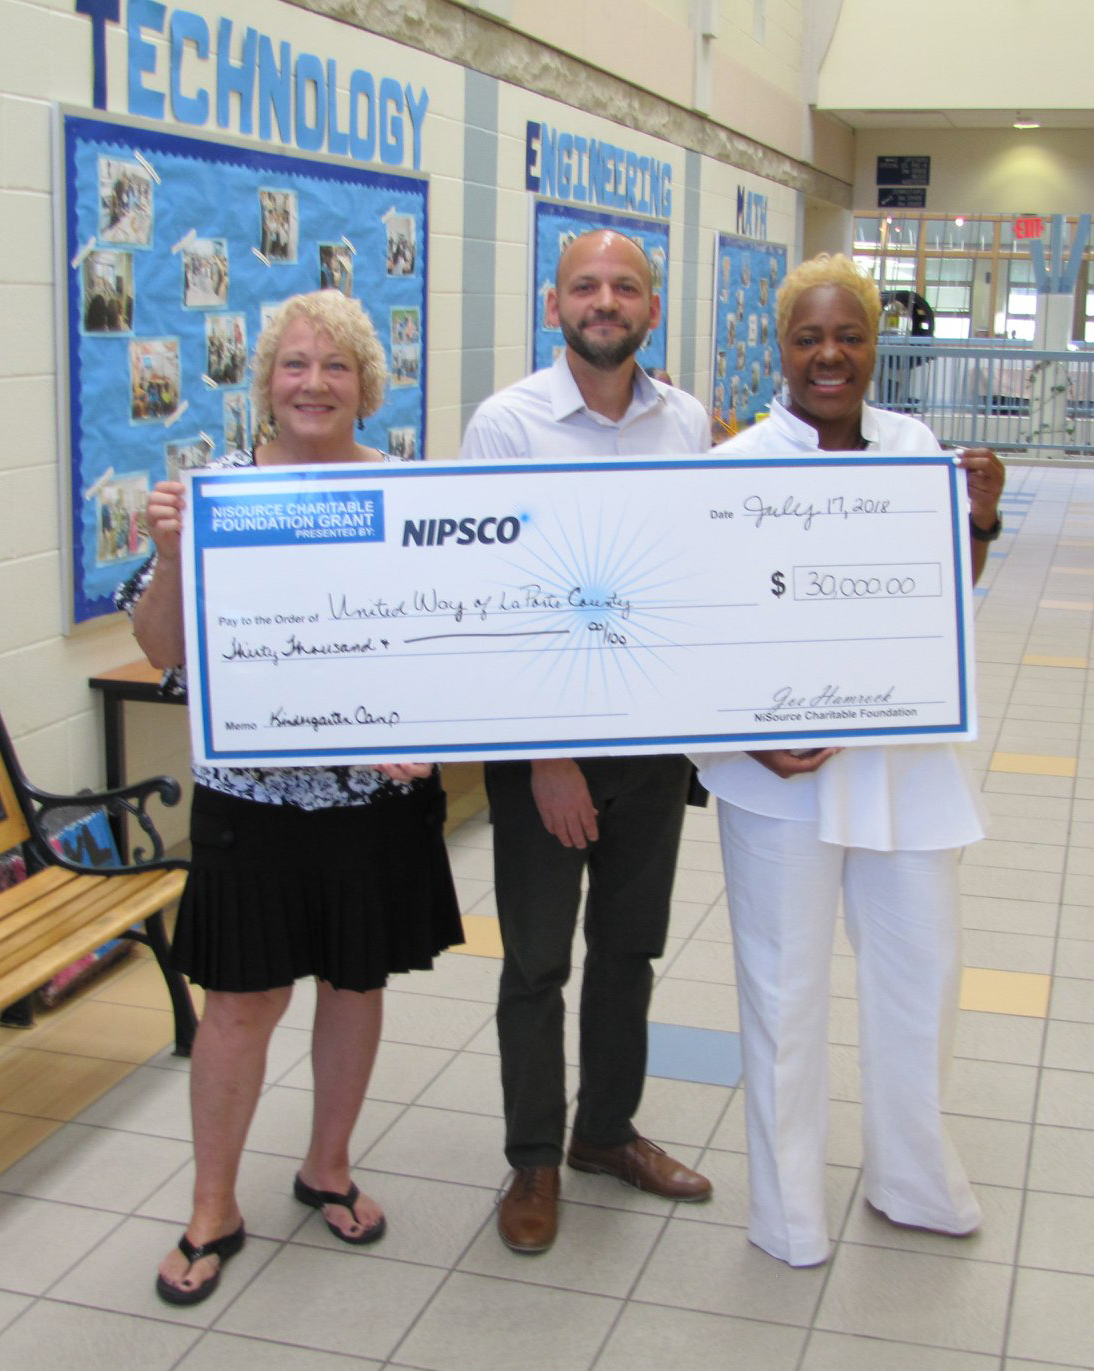 Thanks to United Way of LaPorte County and the generous support of NIPSCO, Healthcare Foundation of La Porte, and Unity Foundation, our community's newest students will start school this fall with the skills they need to succeed!  This is how we LIVE UNITED.